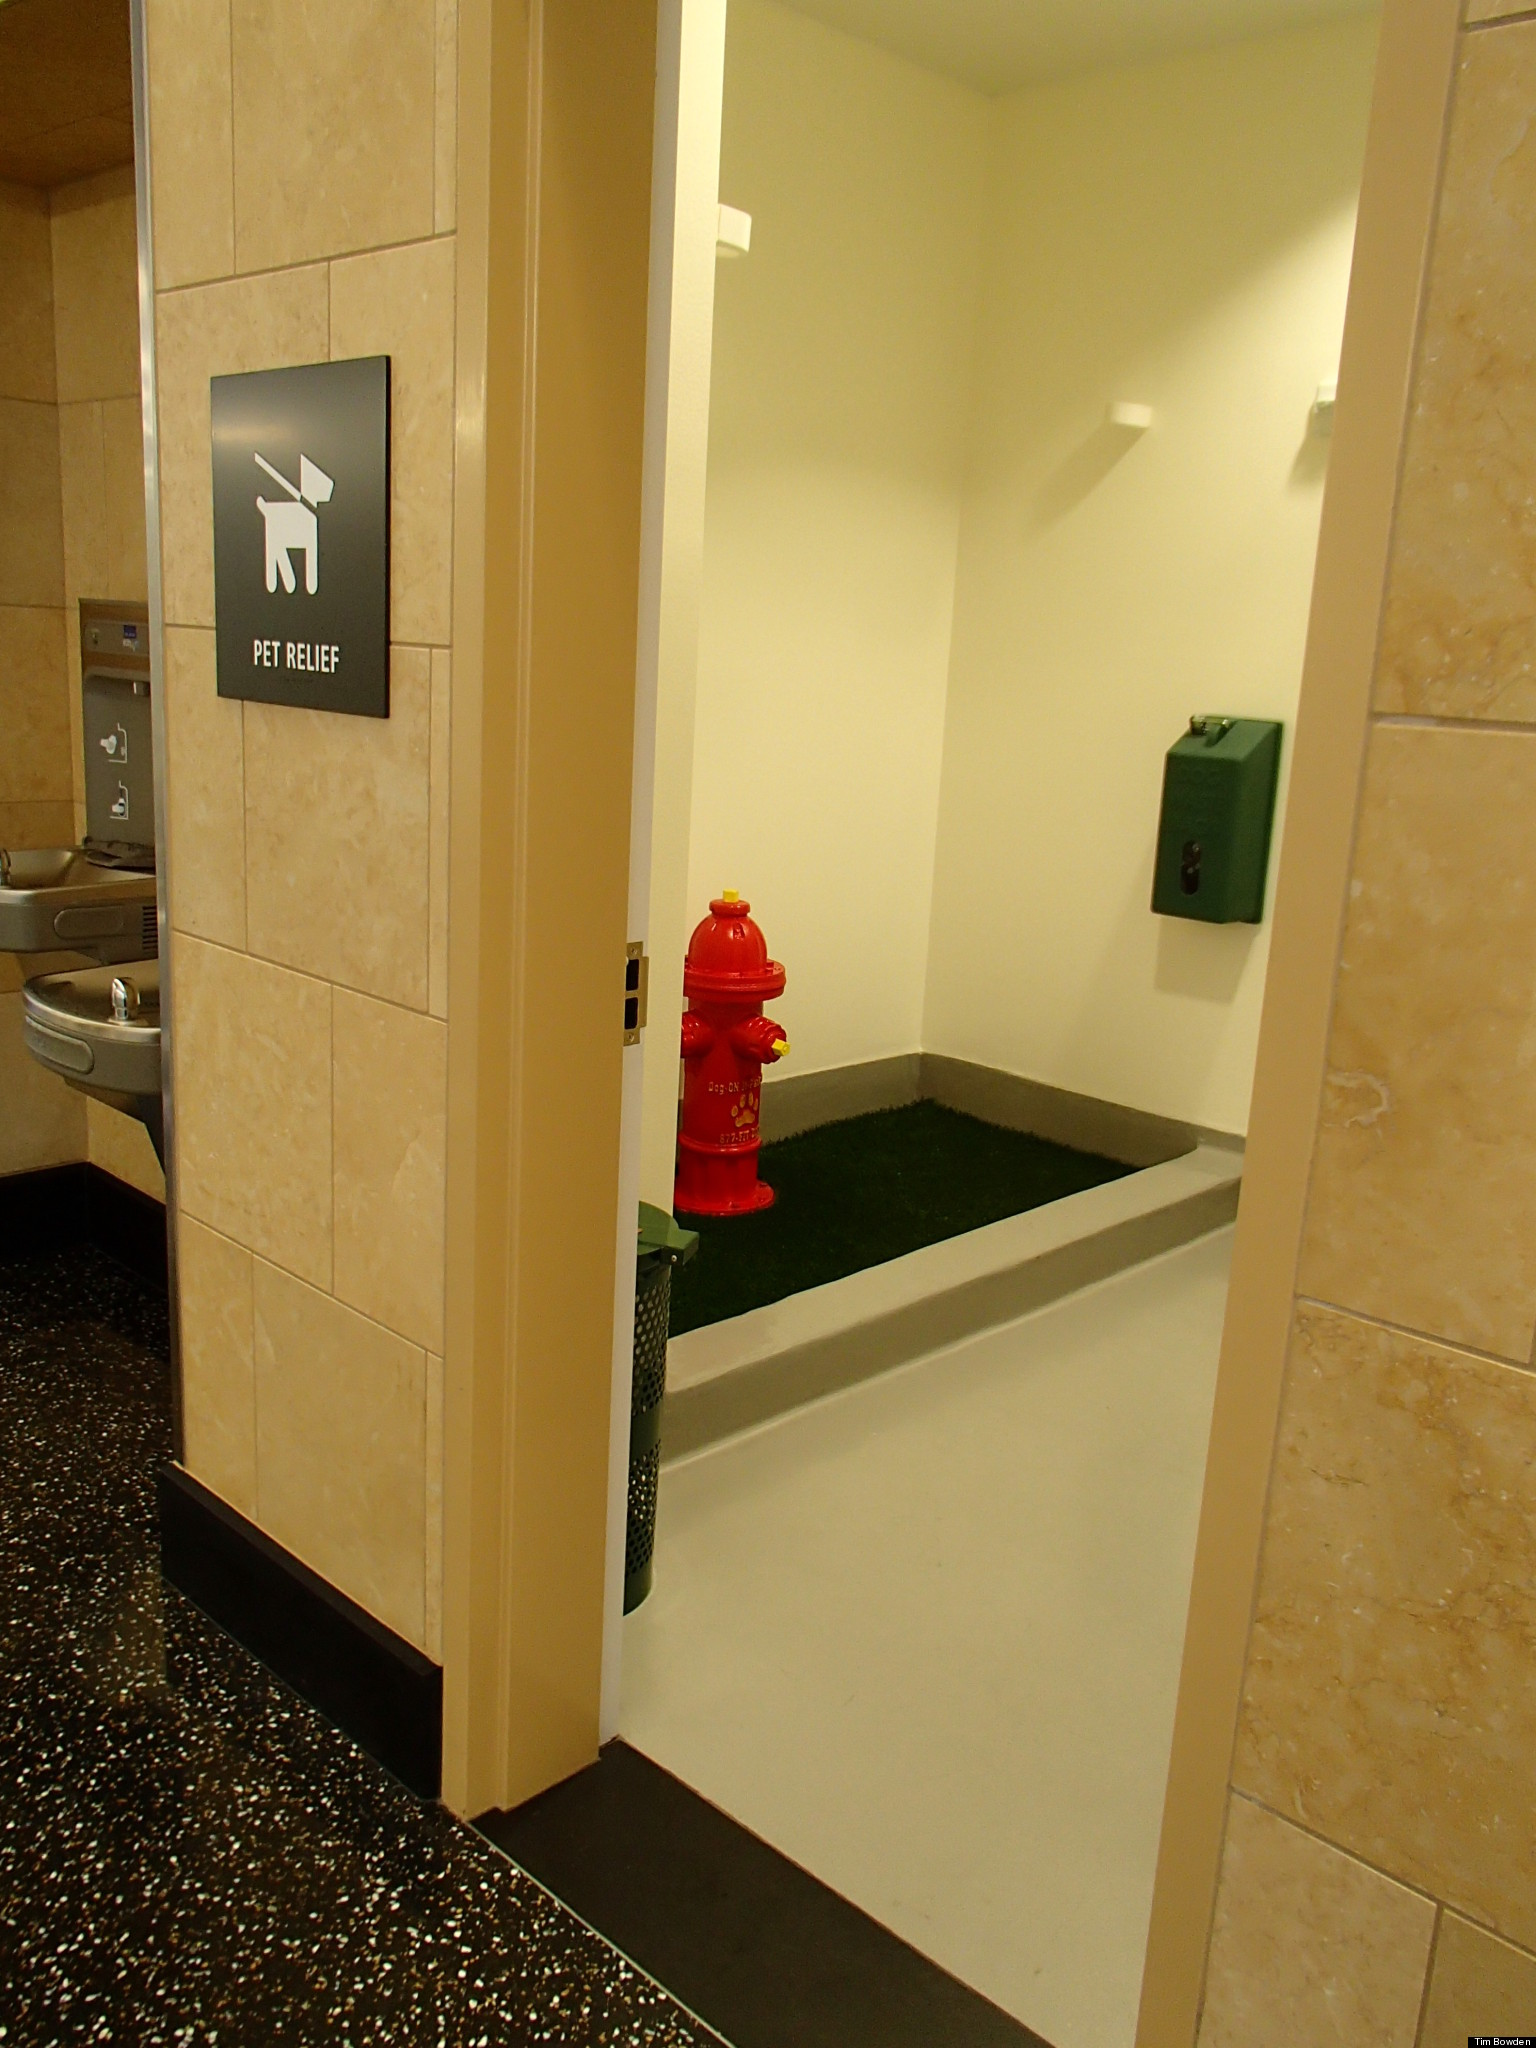 San Diego Airport Dog Bathroom Keeps Pets And Owners Happy Photo